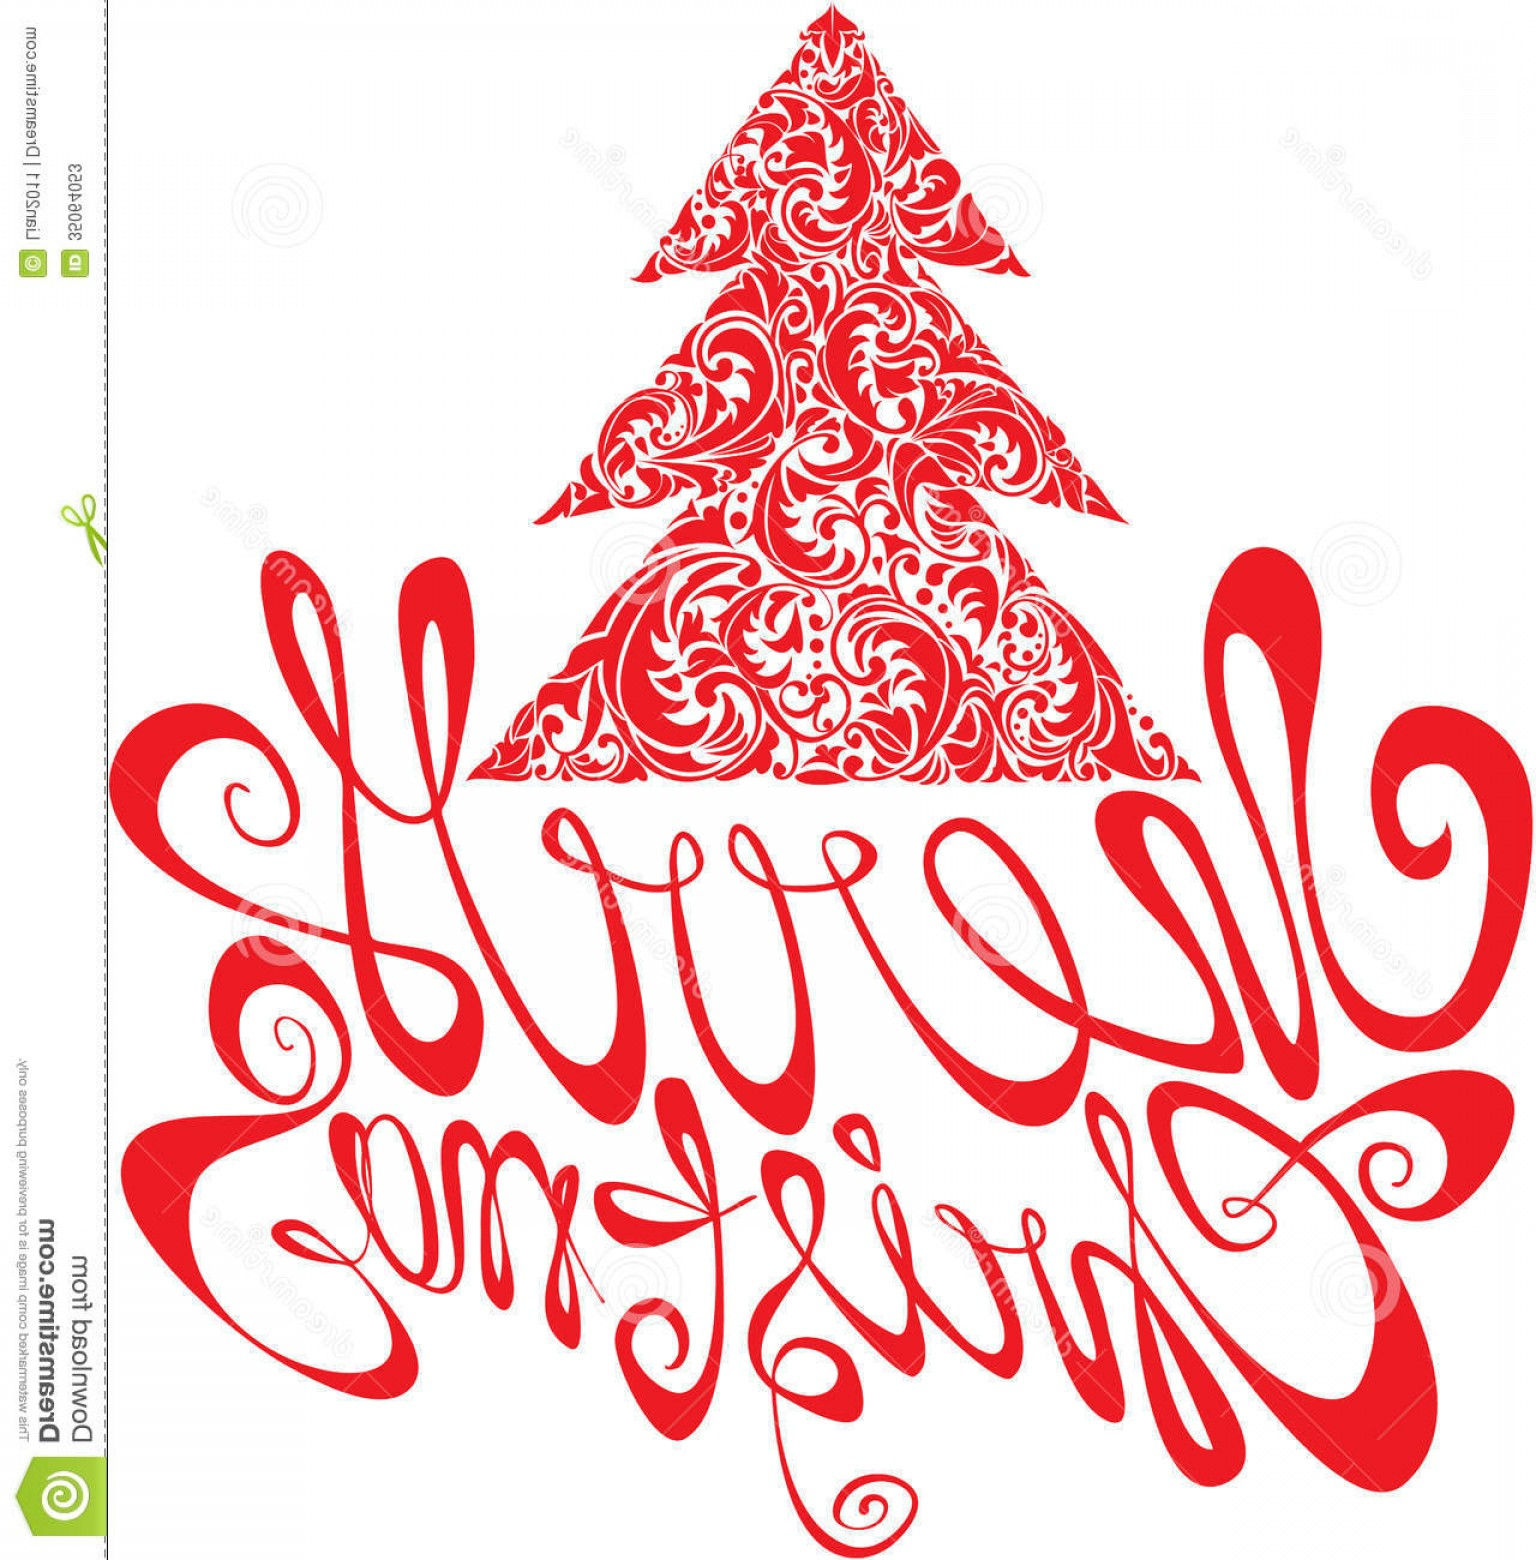 Swirly Christmas Tree Vector: Stock Photos Red Christmas Template Swirly Ornamental Tree Merry Calligraphy White Background Image